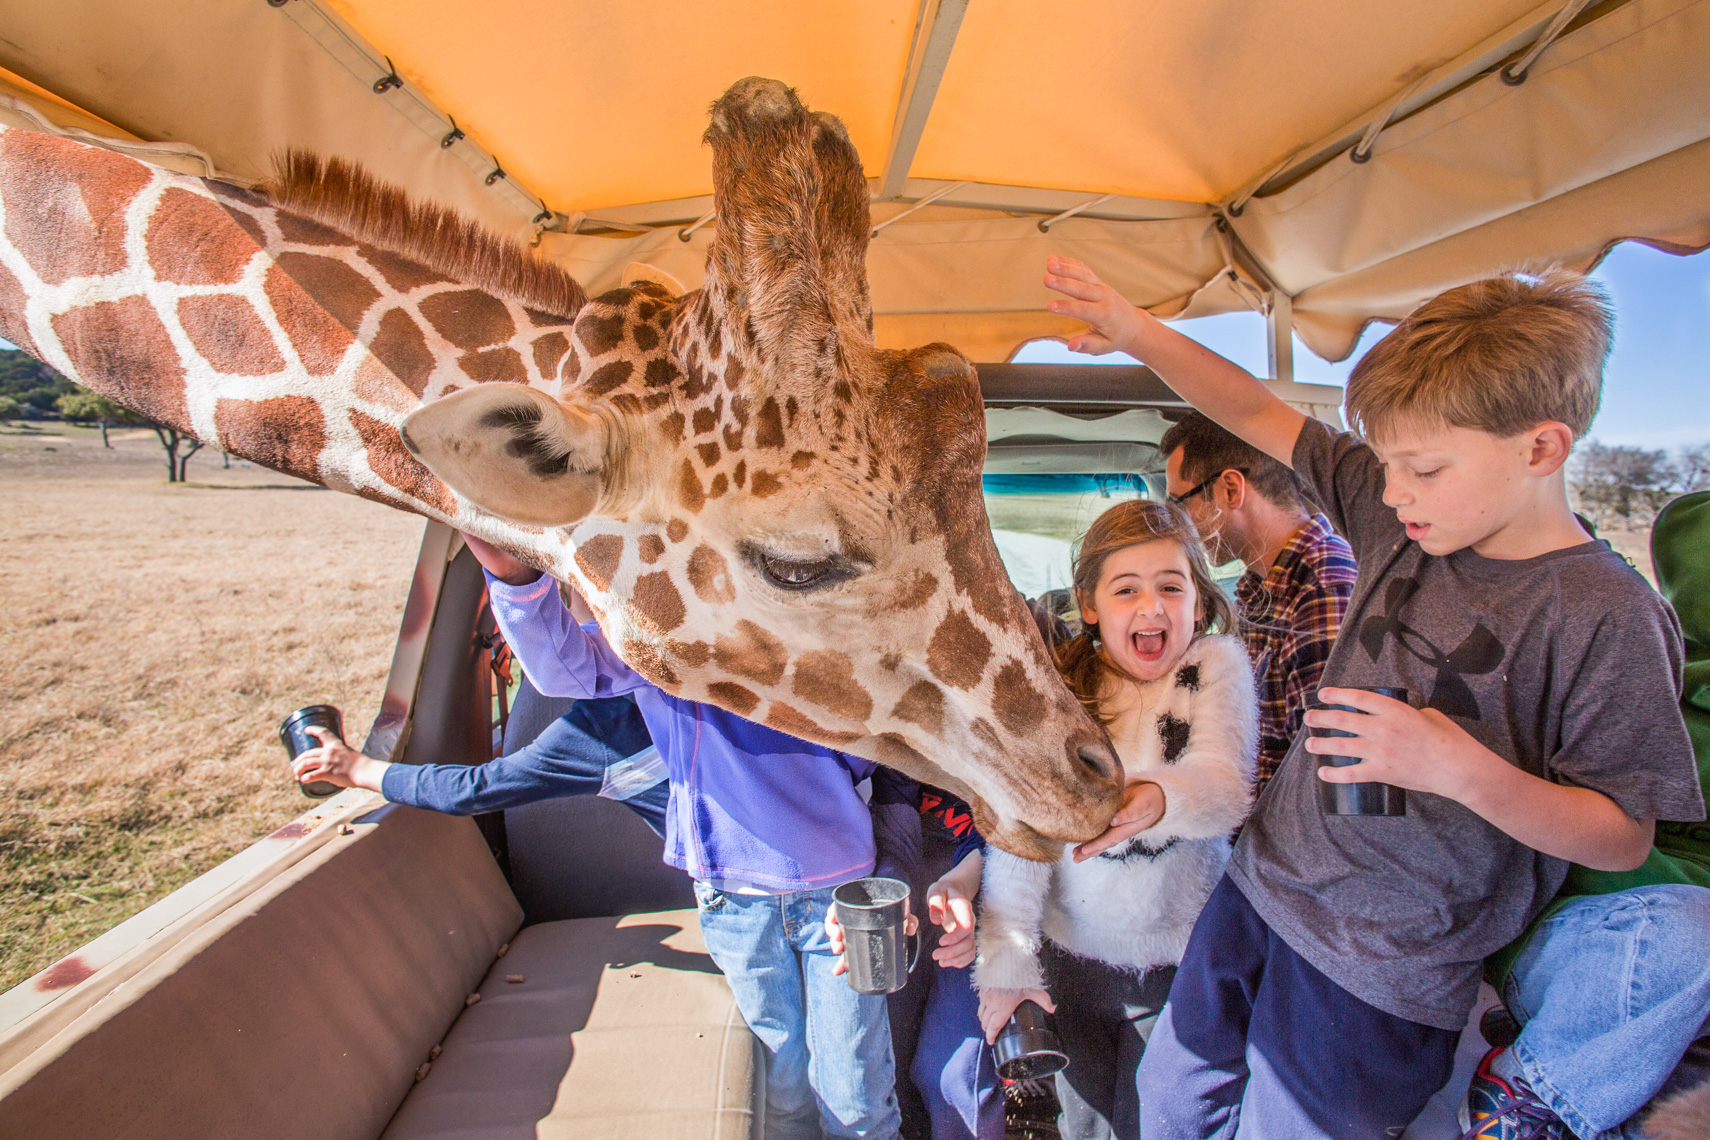 1030Feeding Giraffe, Fossil Rim Wildlife Center, Glen Rose, Texas